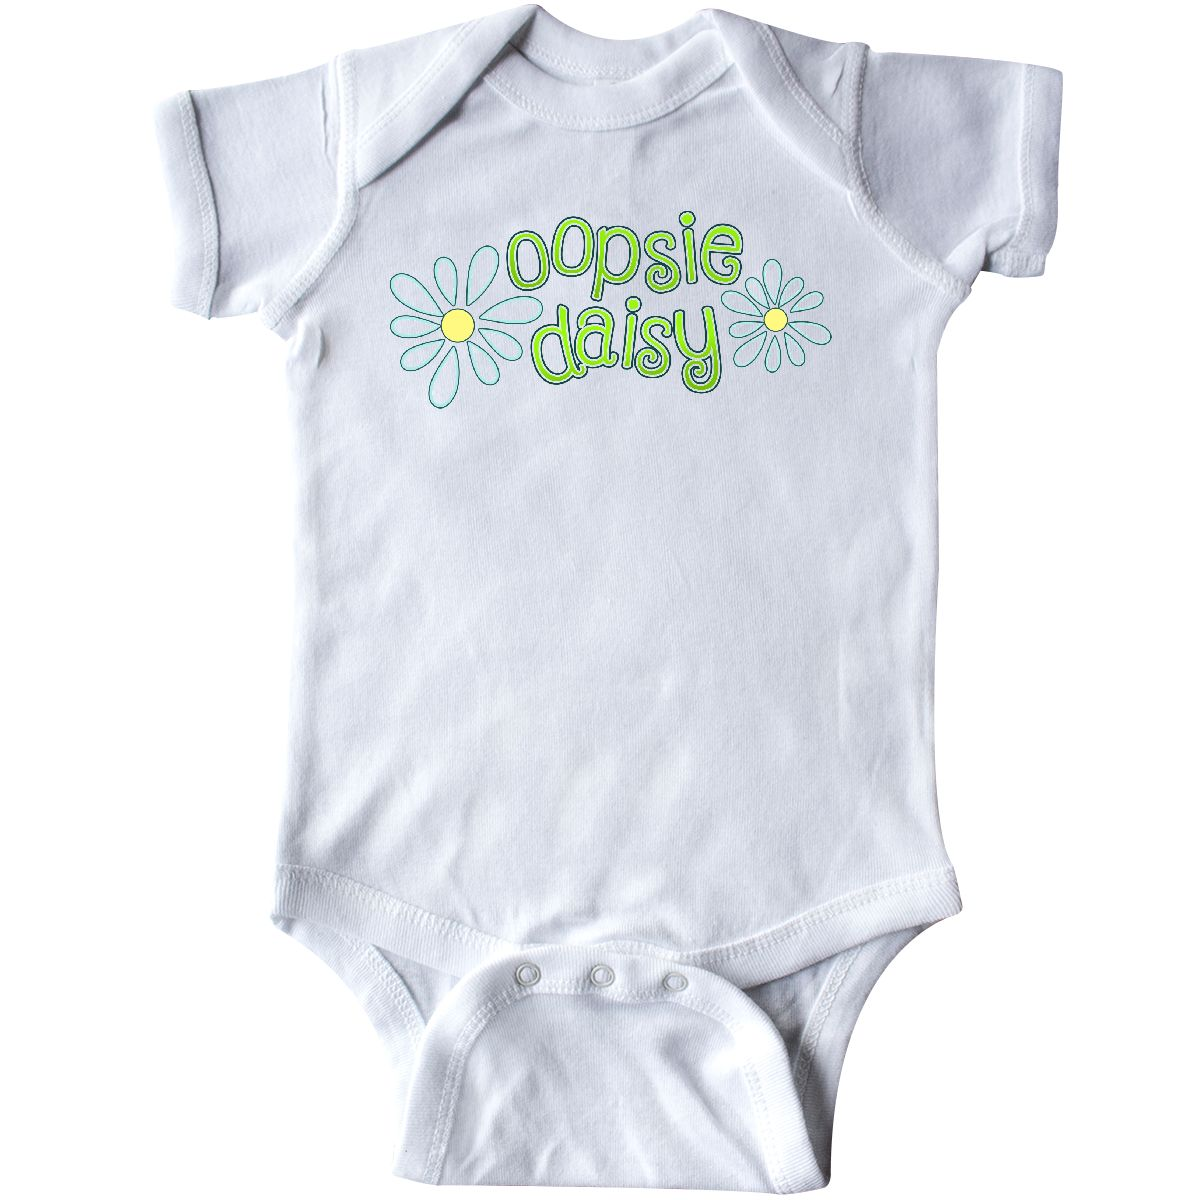 Inktastic Oopsie Daisy Infant Creeper Baby Little Learning Flower